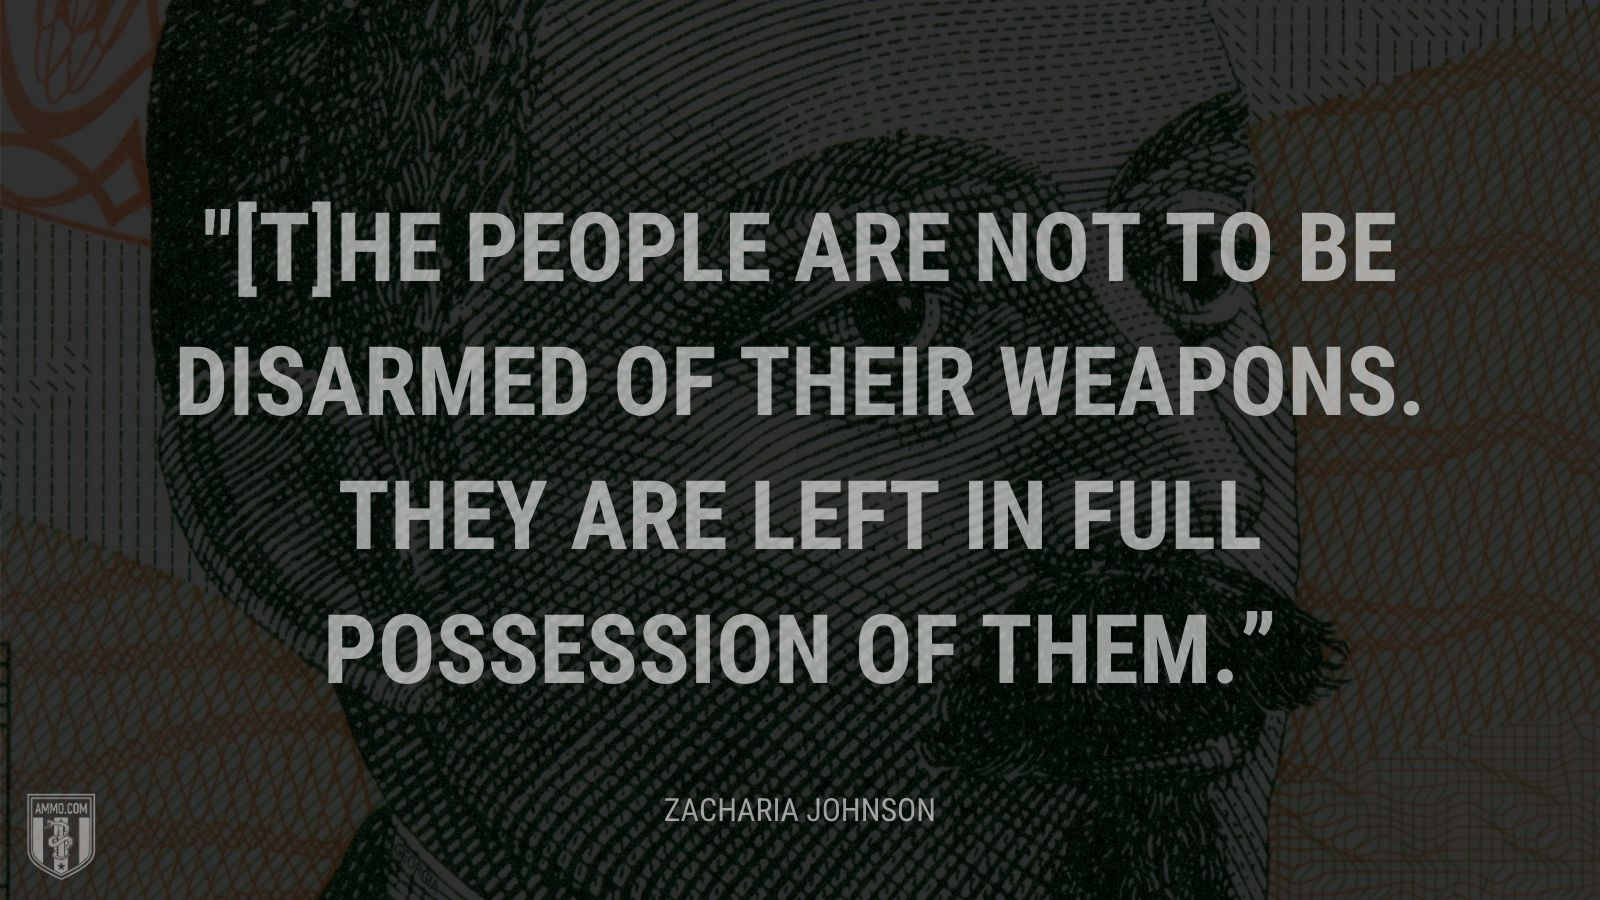 """[T]he people are not to be disarmed of their weapons. They are left in full possession of them."" - Zacharia Johnson"